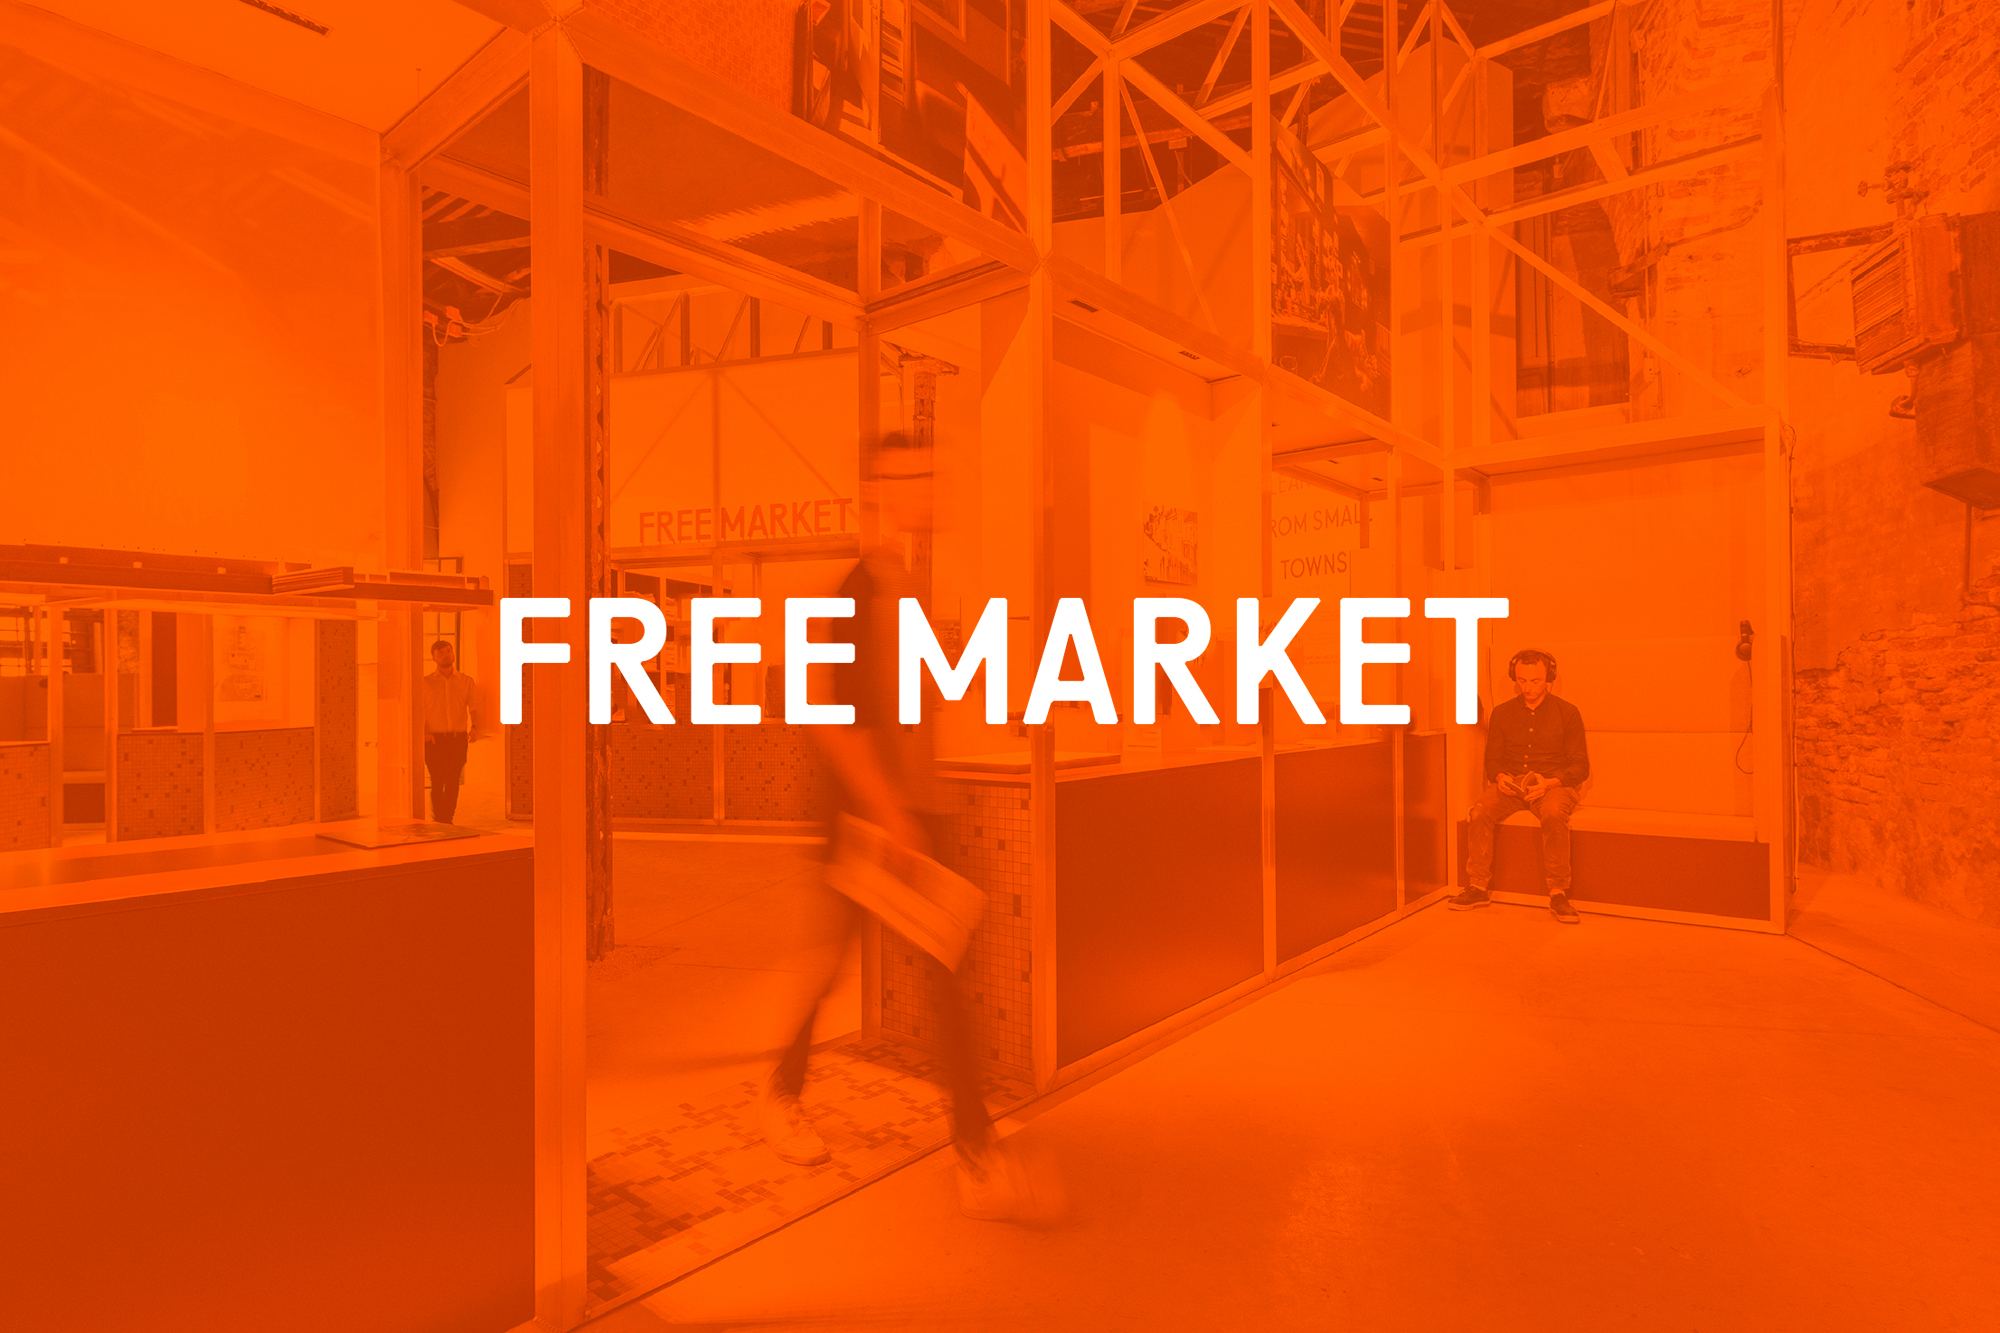 Cover image: Free Market